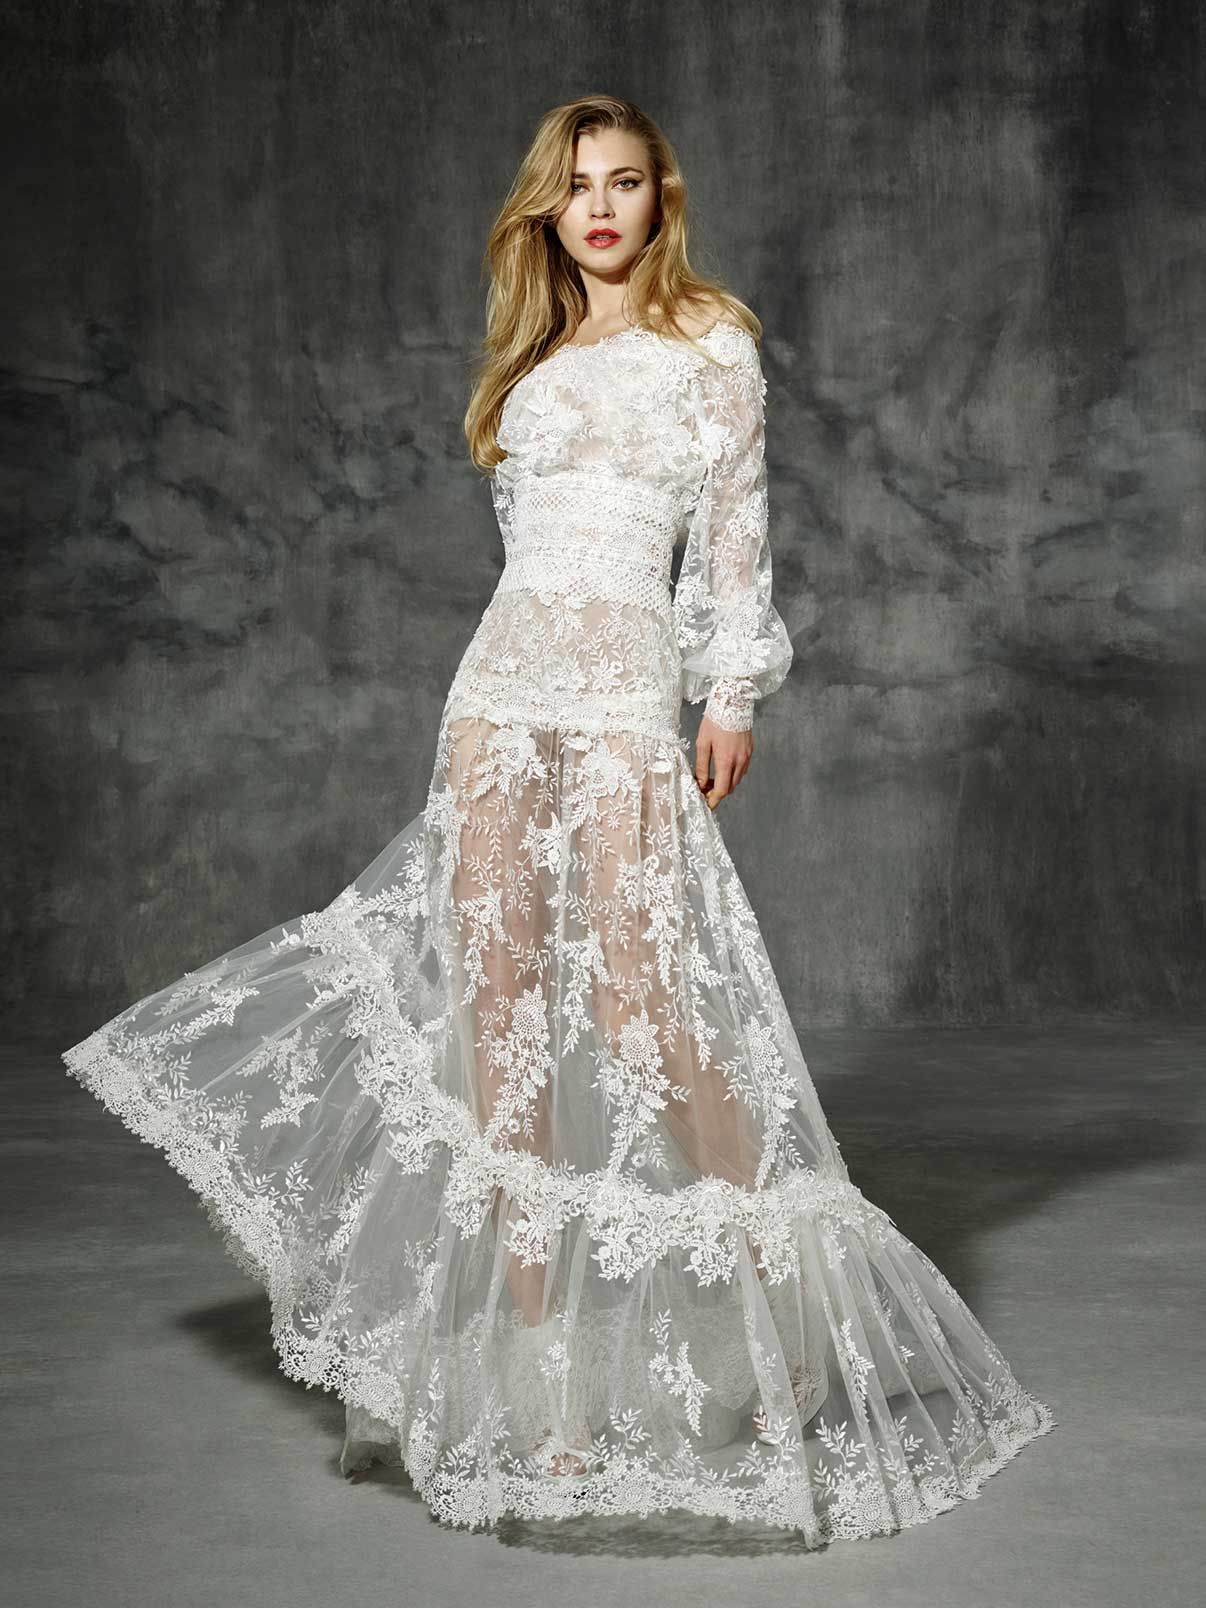 Yolancris boho chic wedding dress and boho folk bridal looks with